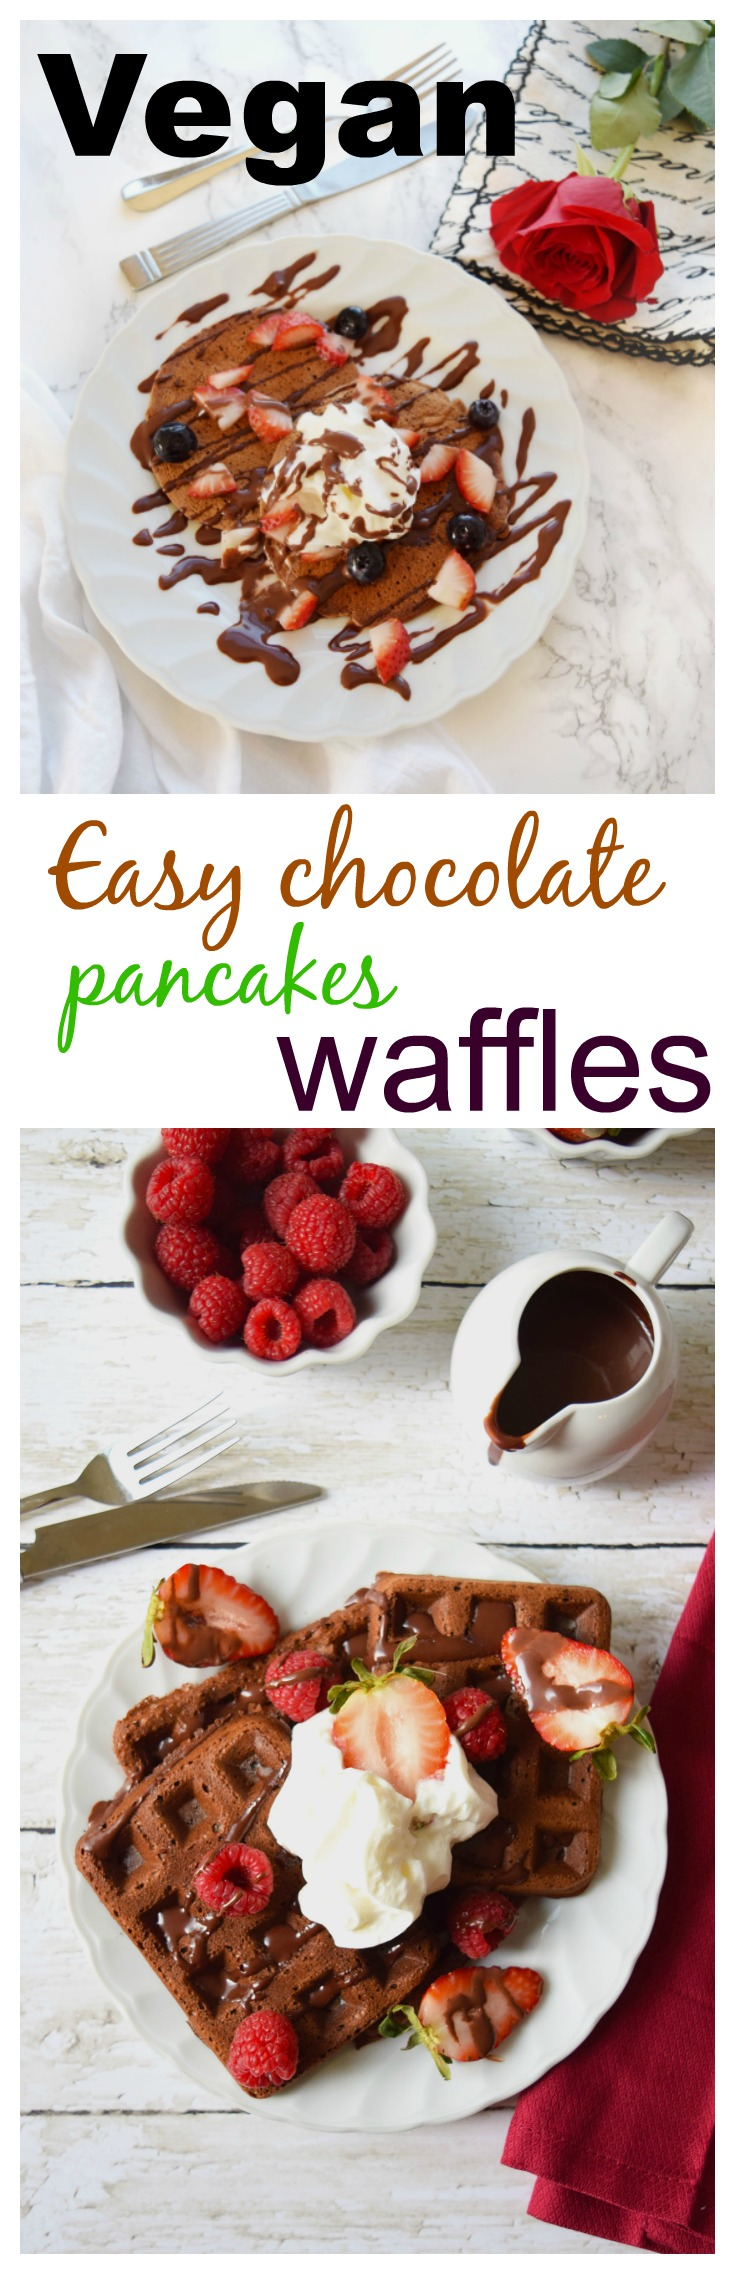 easy-chocolate-pancakes-and-waffles-vegan